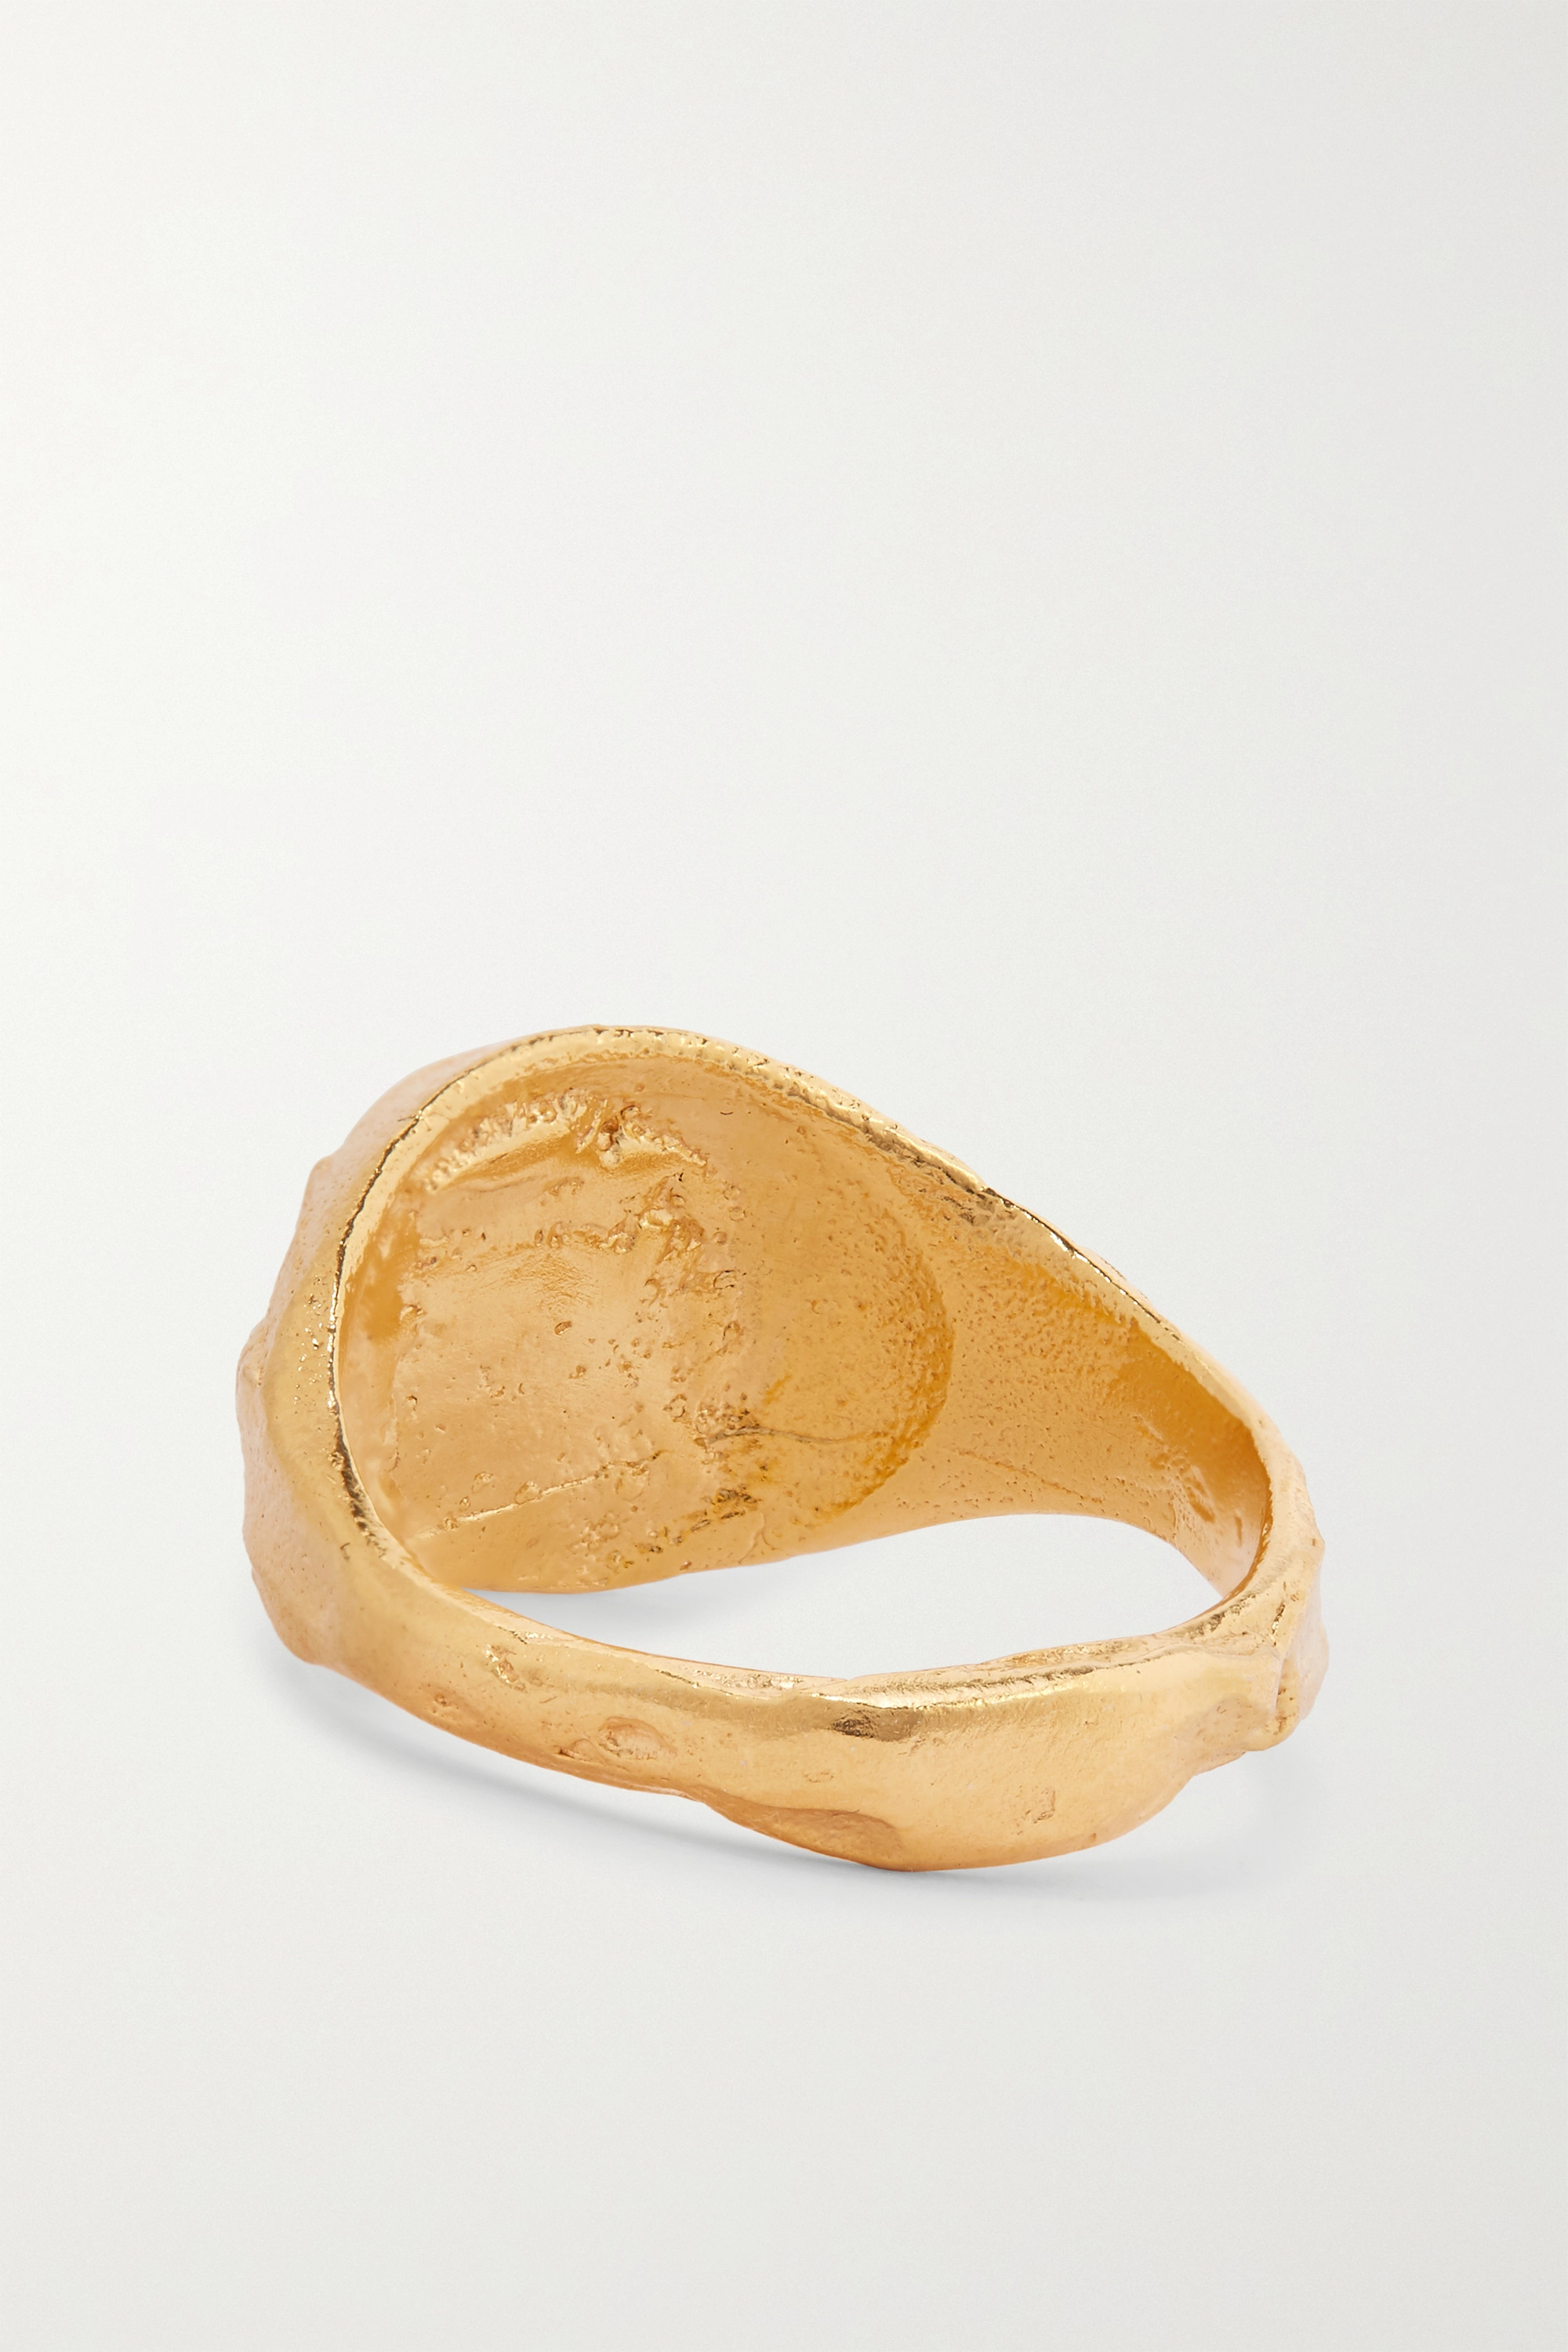 Alighieri The Infernal Stone gold-plated ring